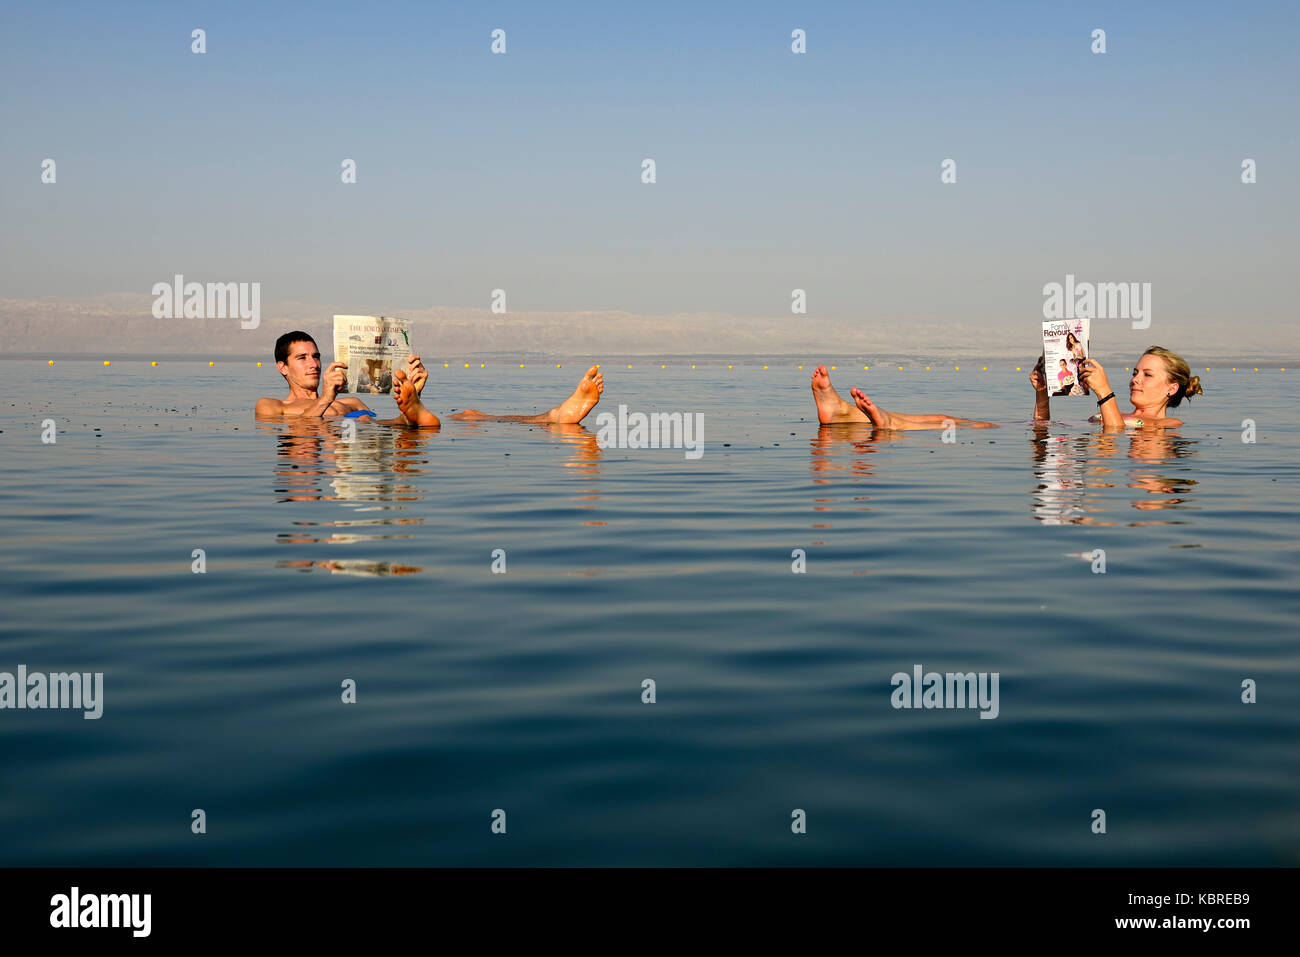 Young couple reads newspaper floating in Dead Sea, Jordan - Stock Image